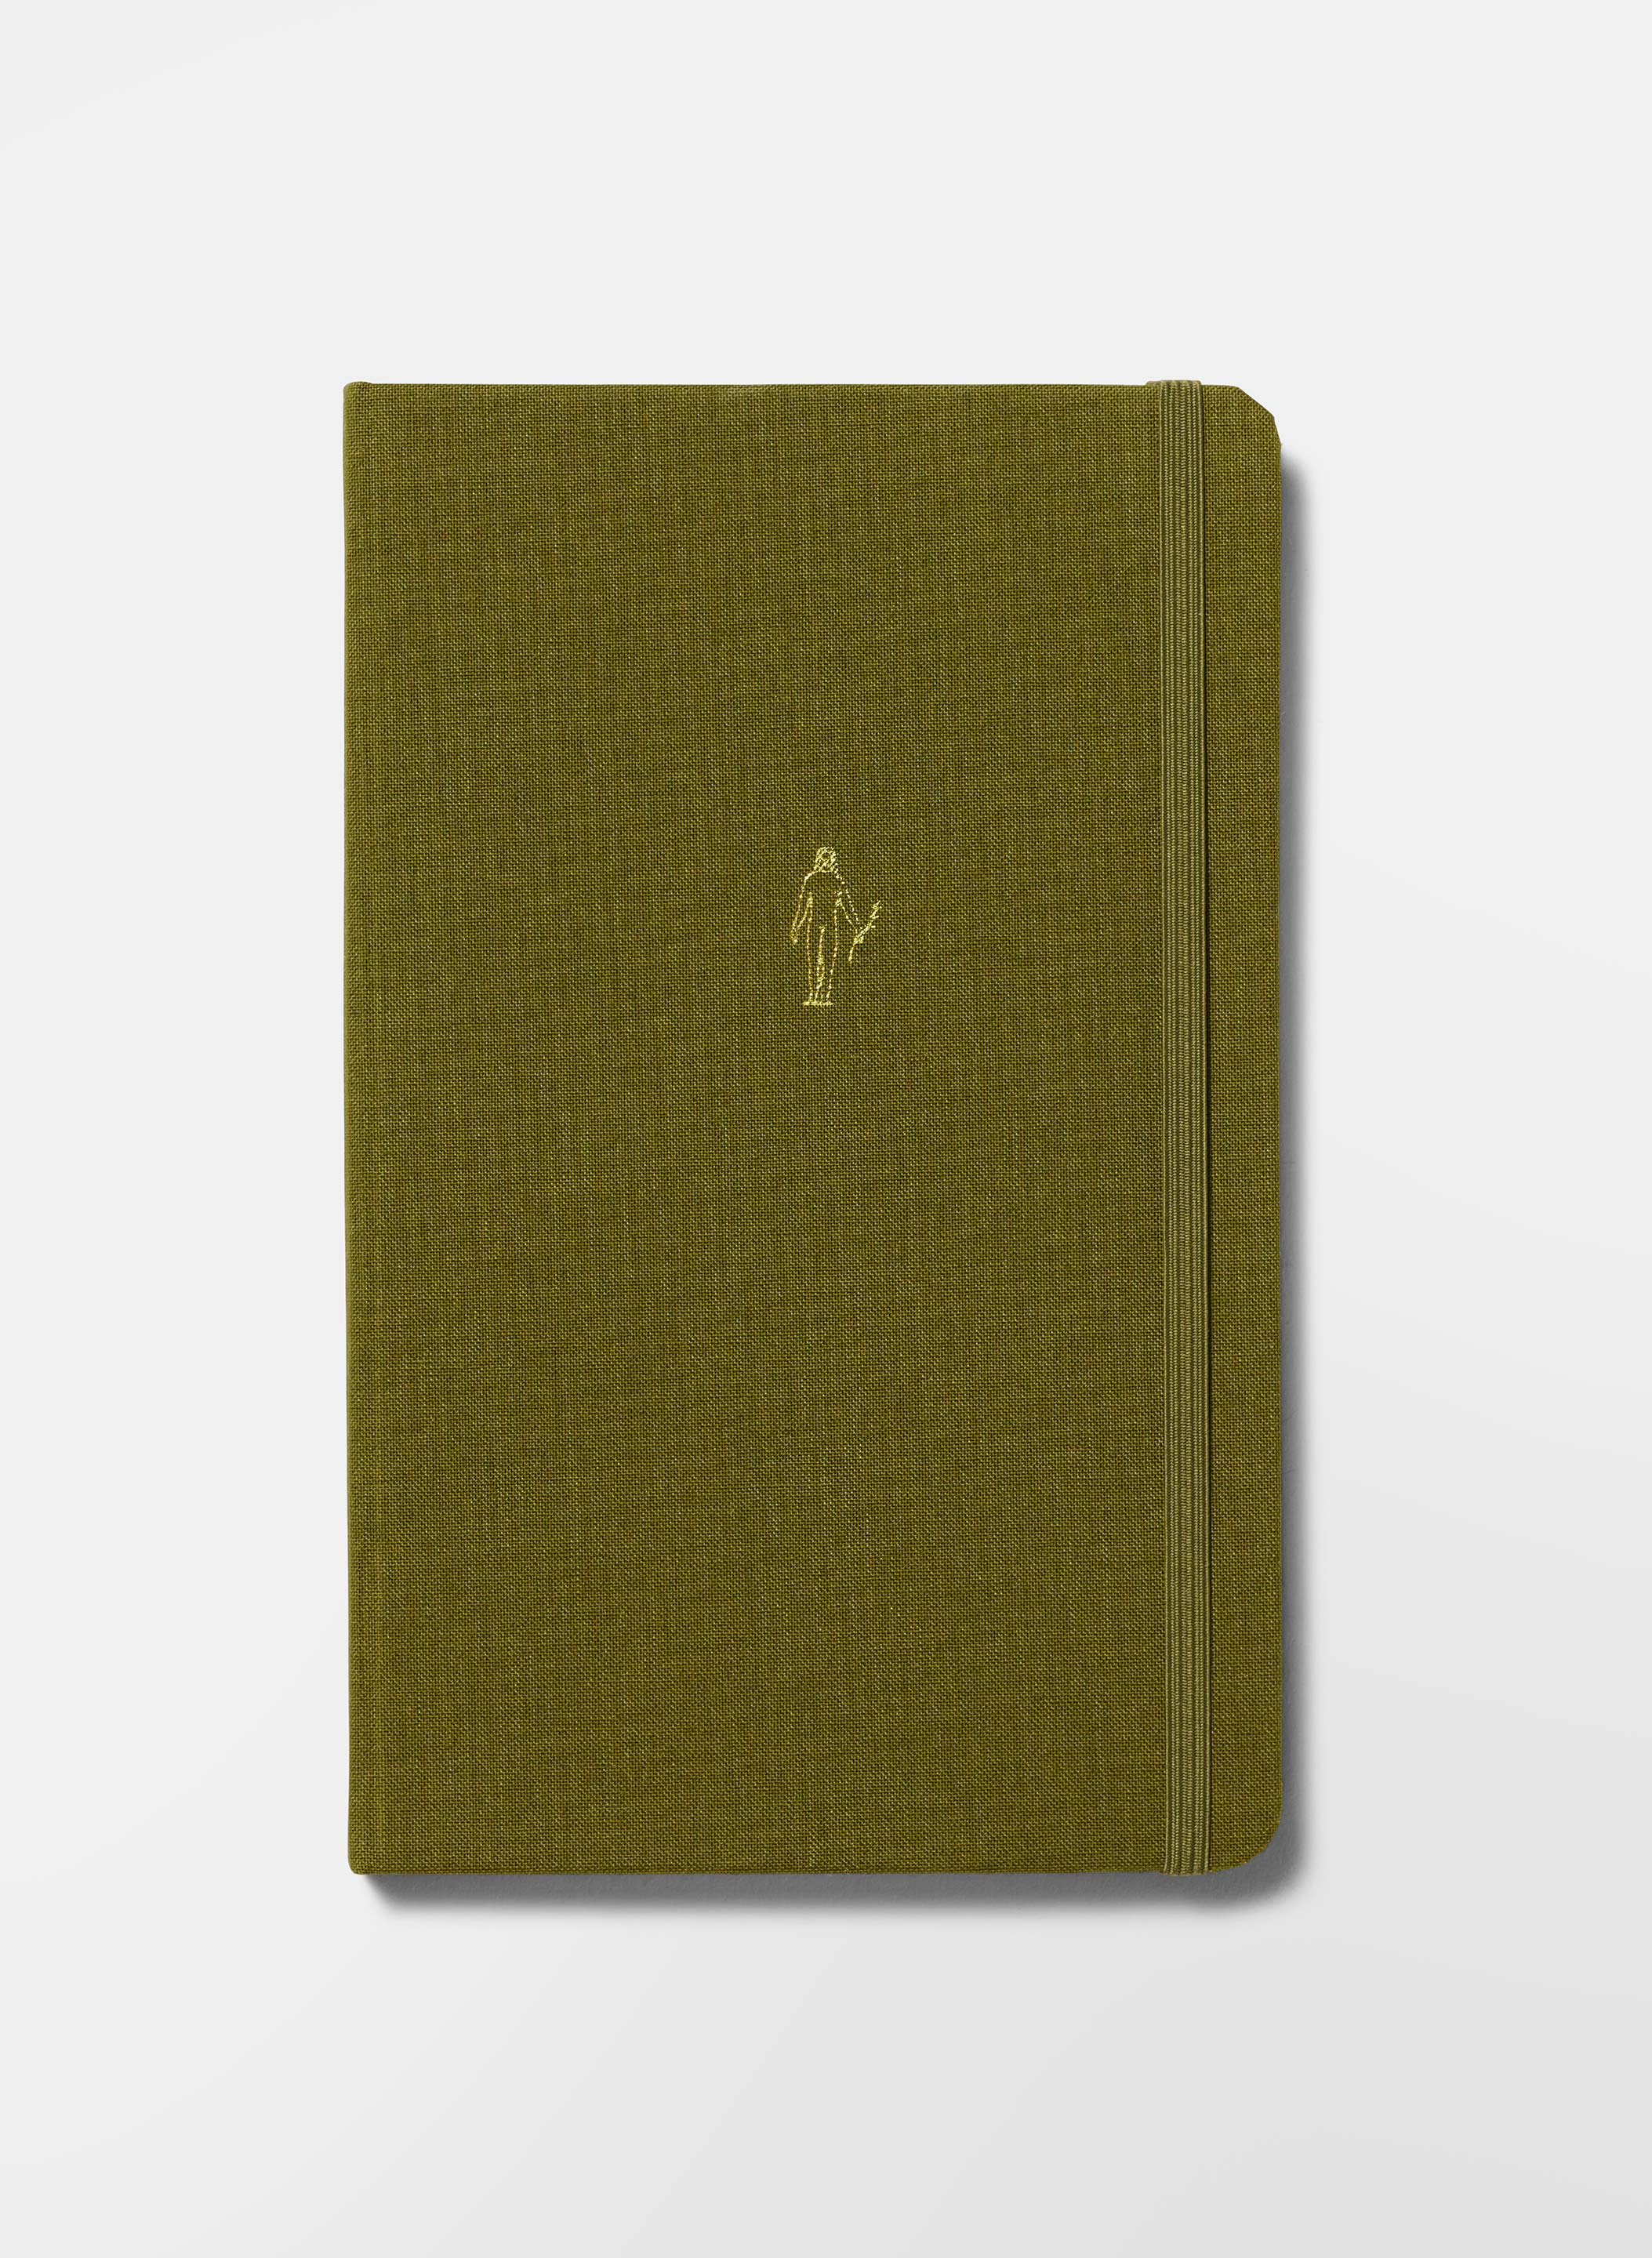 imogene + willie - olive field book by land